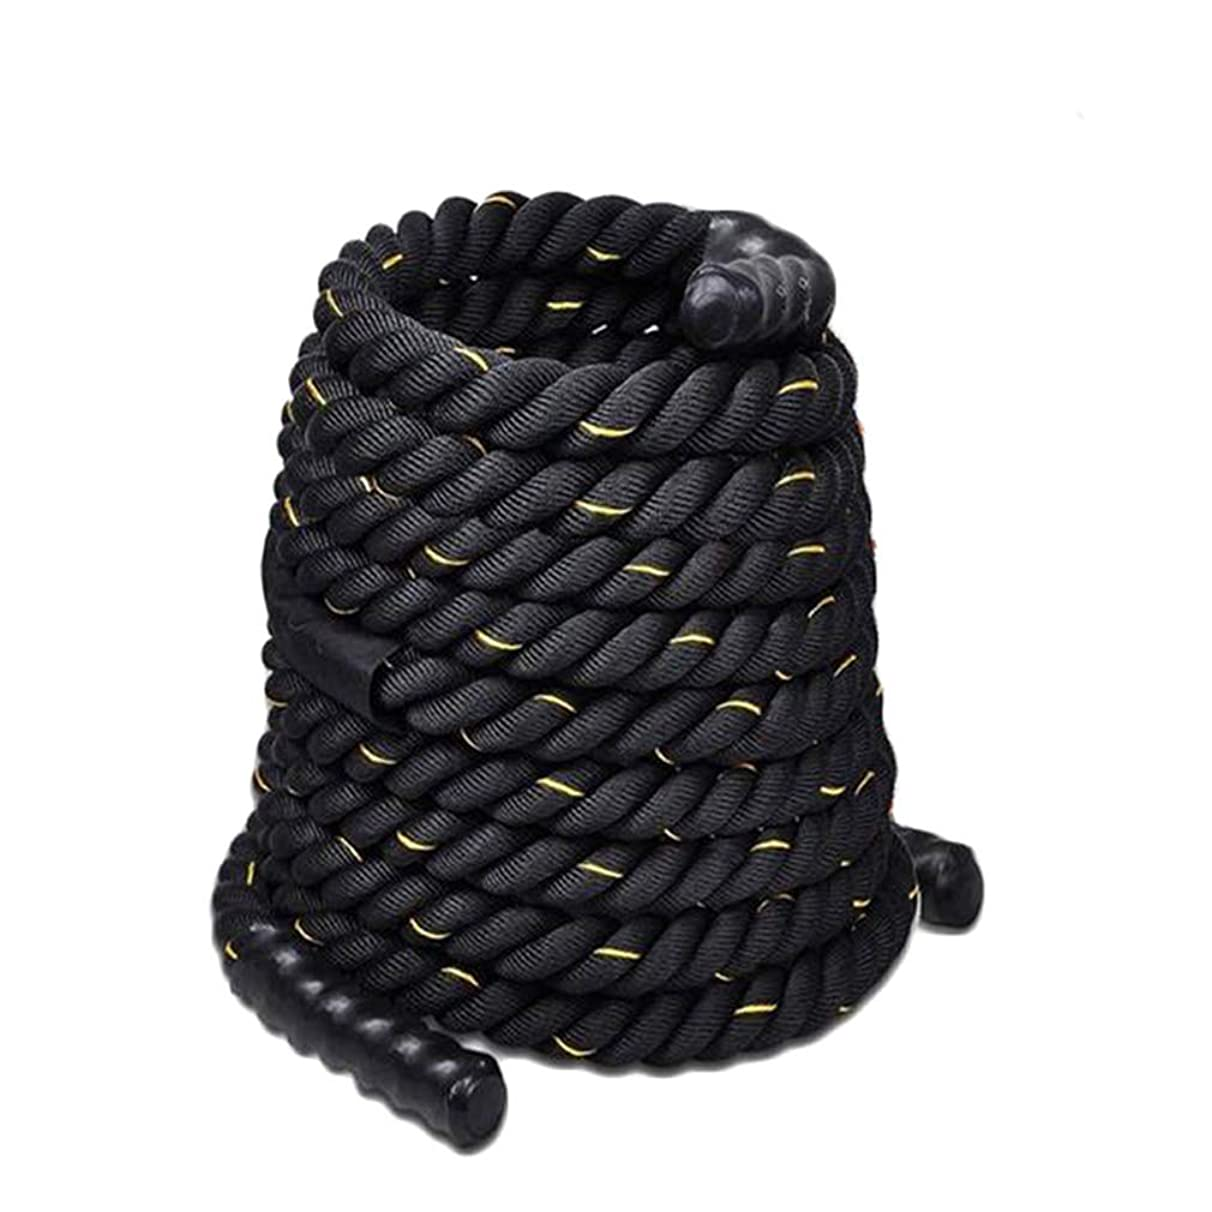 UFC Fitness Training Rope Fighting Rope Fitness Thick Rope Muscle Big Reins Power Rope Battle Rope Tug of War Rope